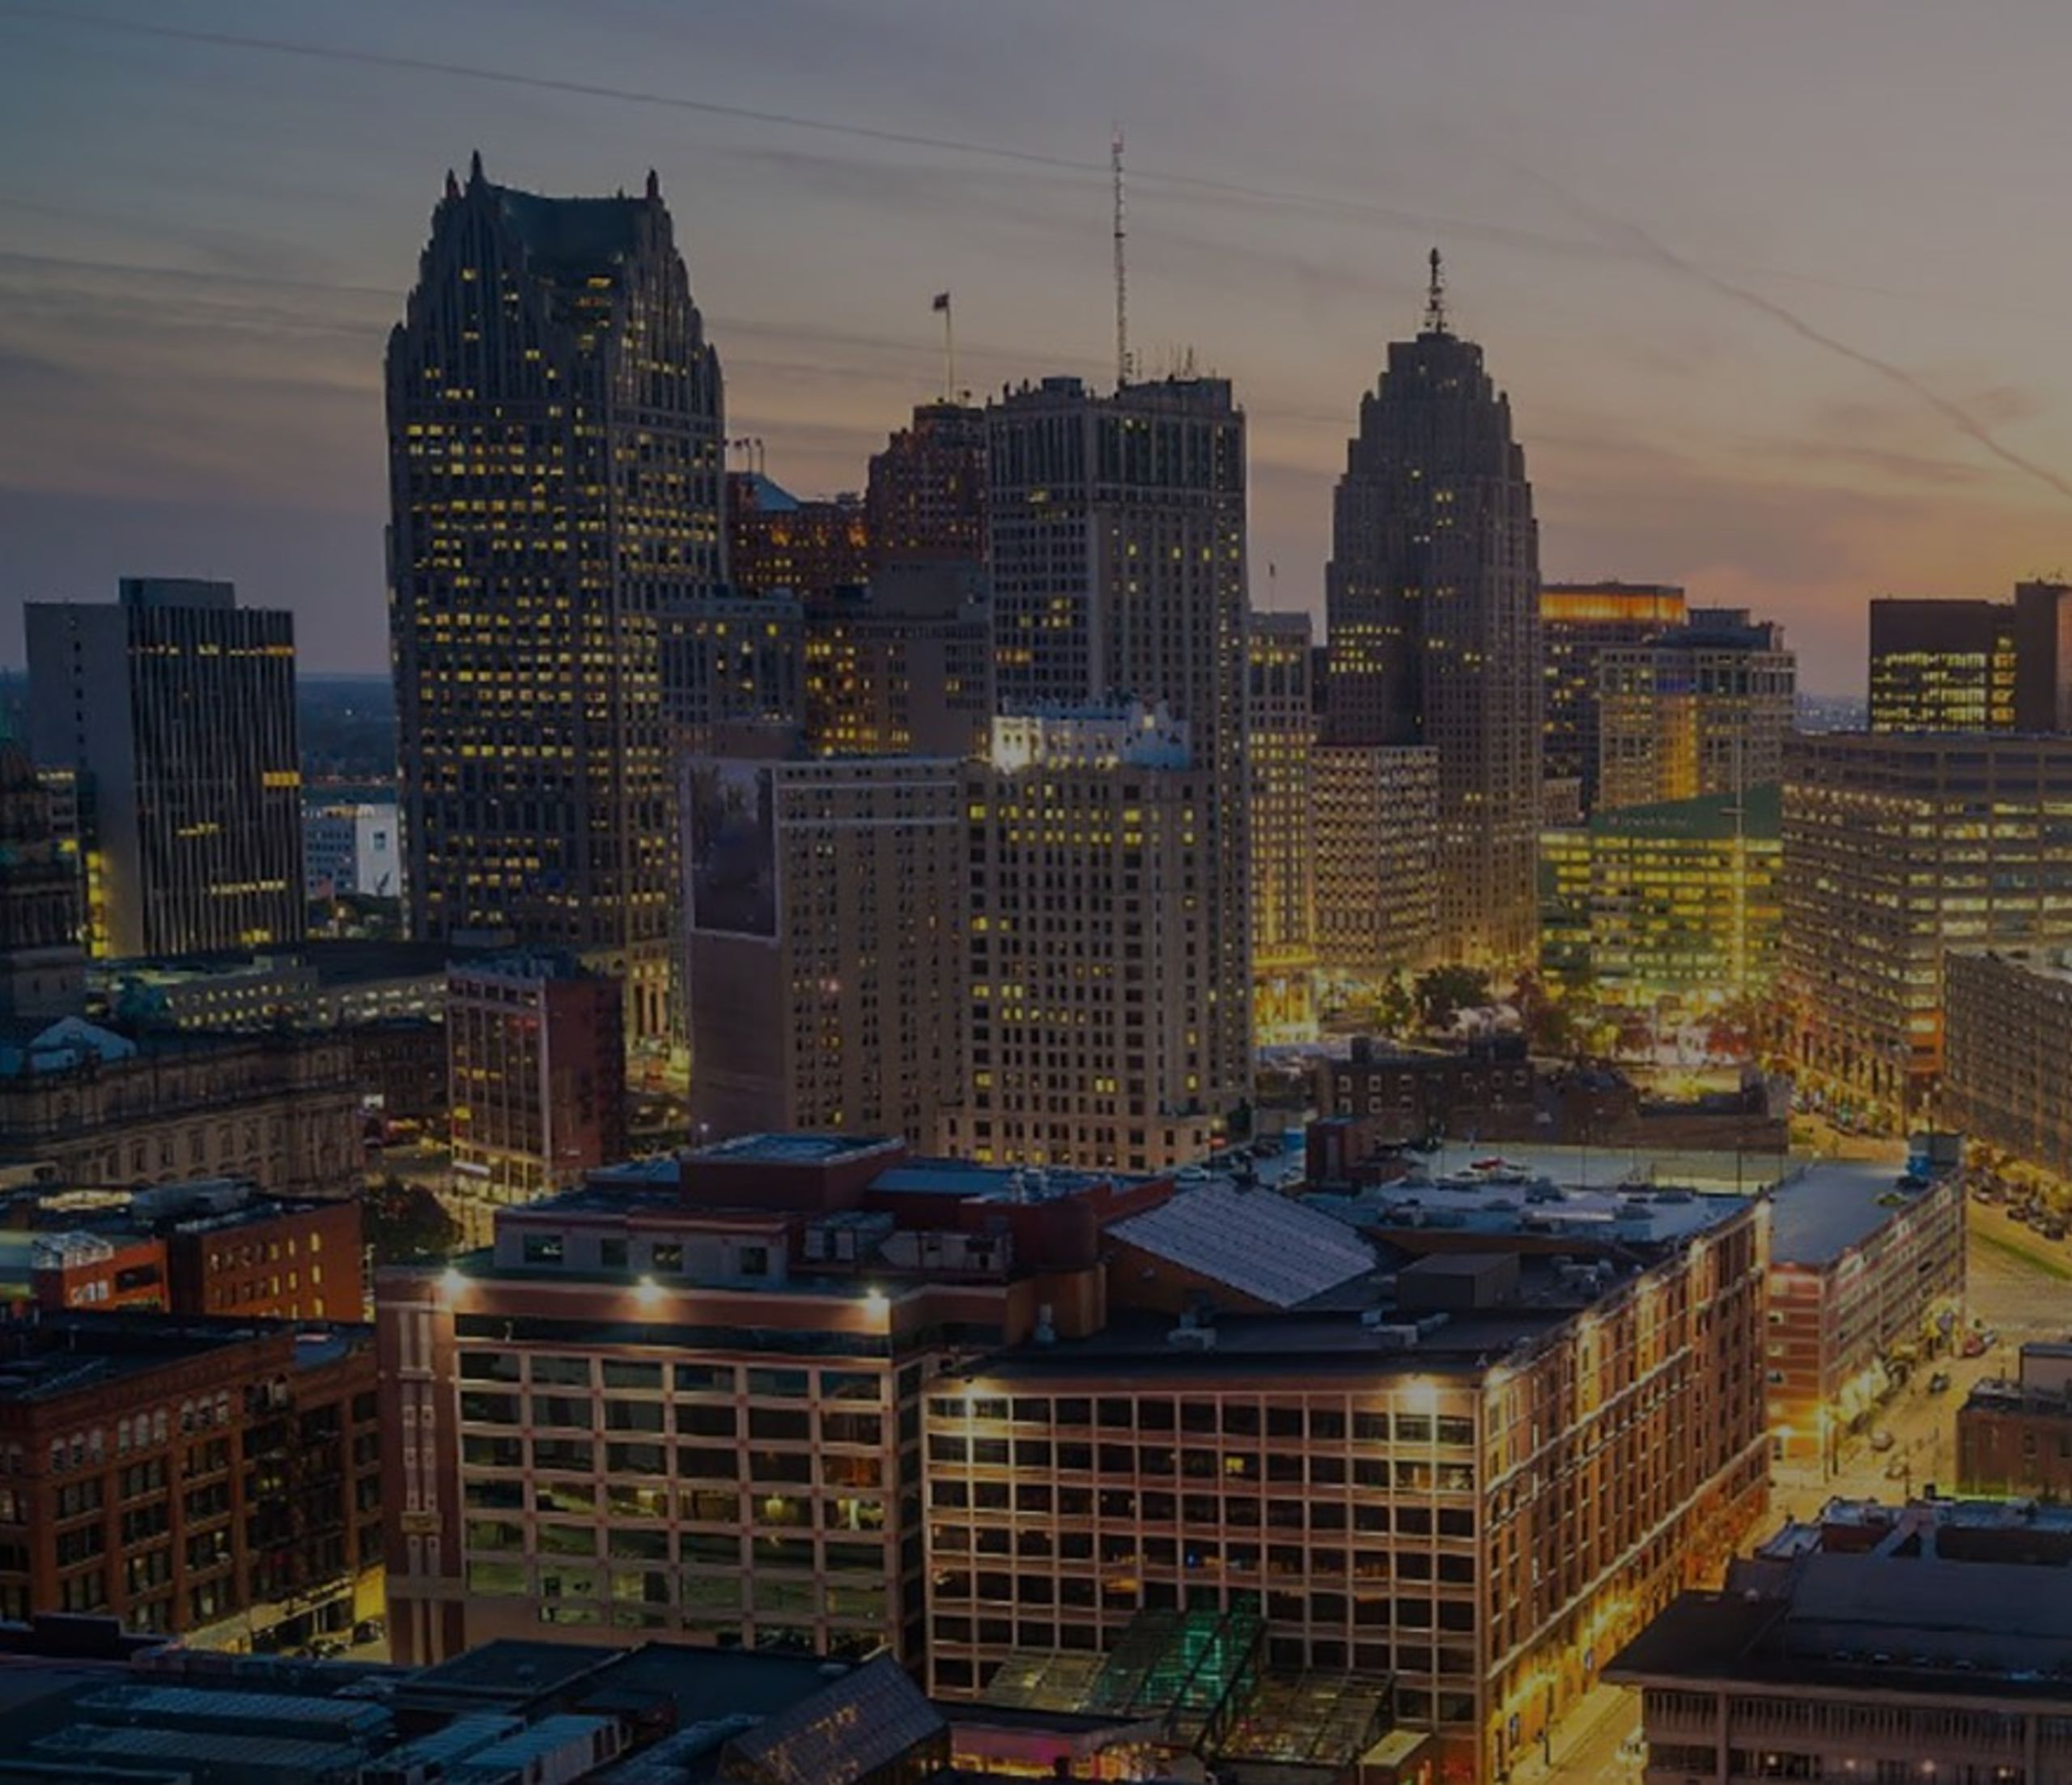 """""""At least $5.4 billion in real estate development and redevelopment projects are underway or proposed in and around downtown Detroit the next three years, according to report recently released by an international real estate firm."""""""